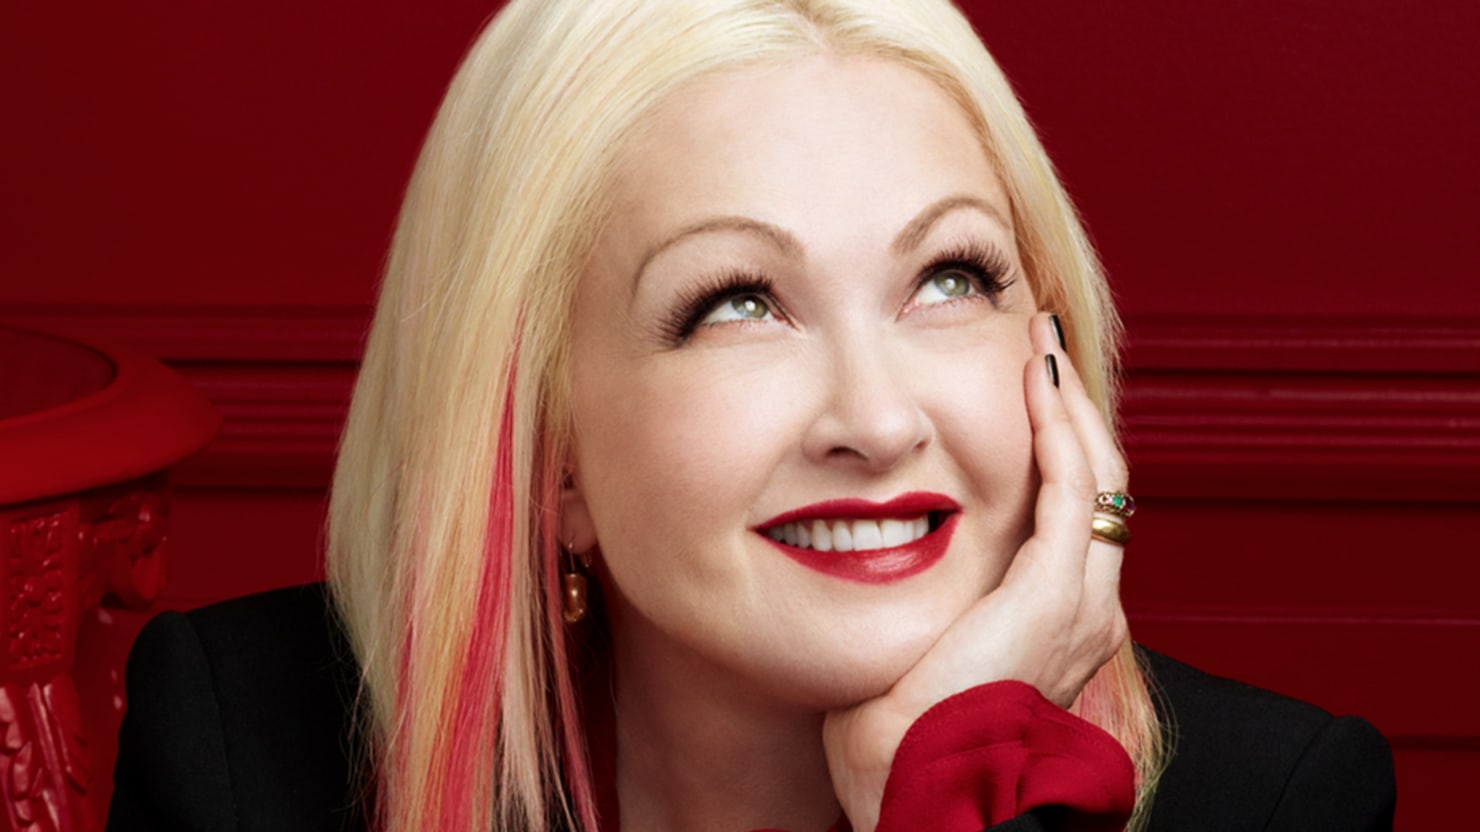 Cyndi Lauper: Girls Just Want to Have Birth Control